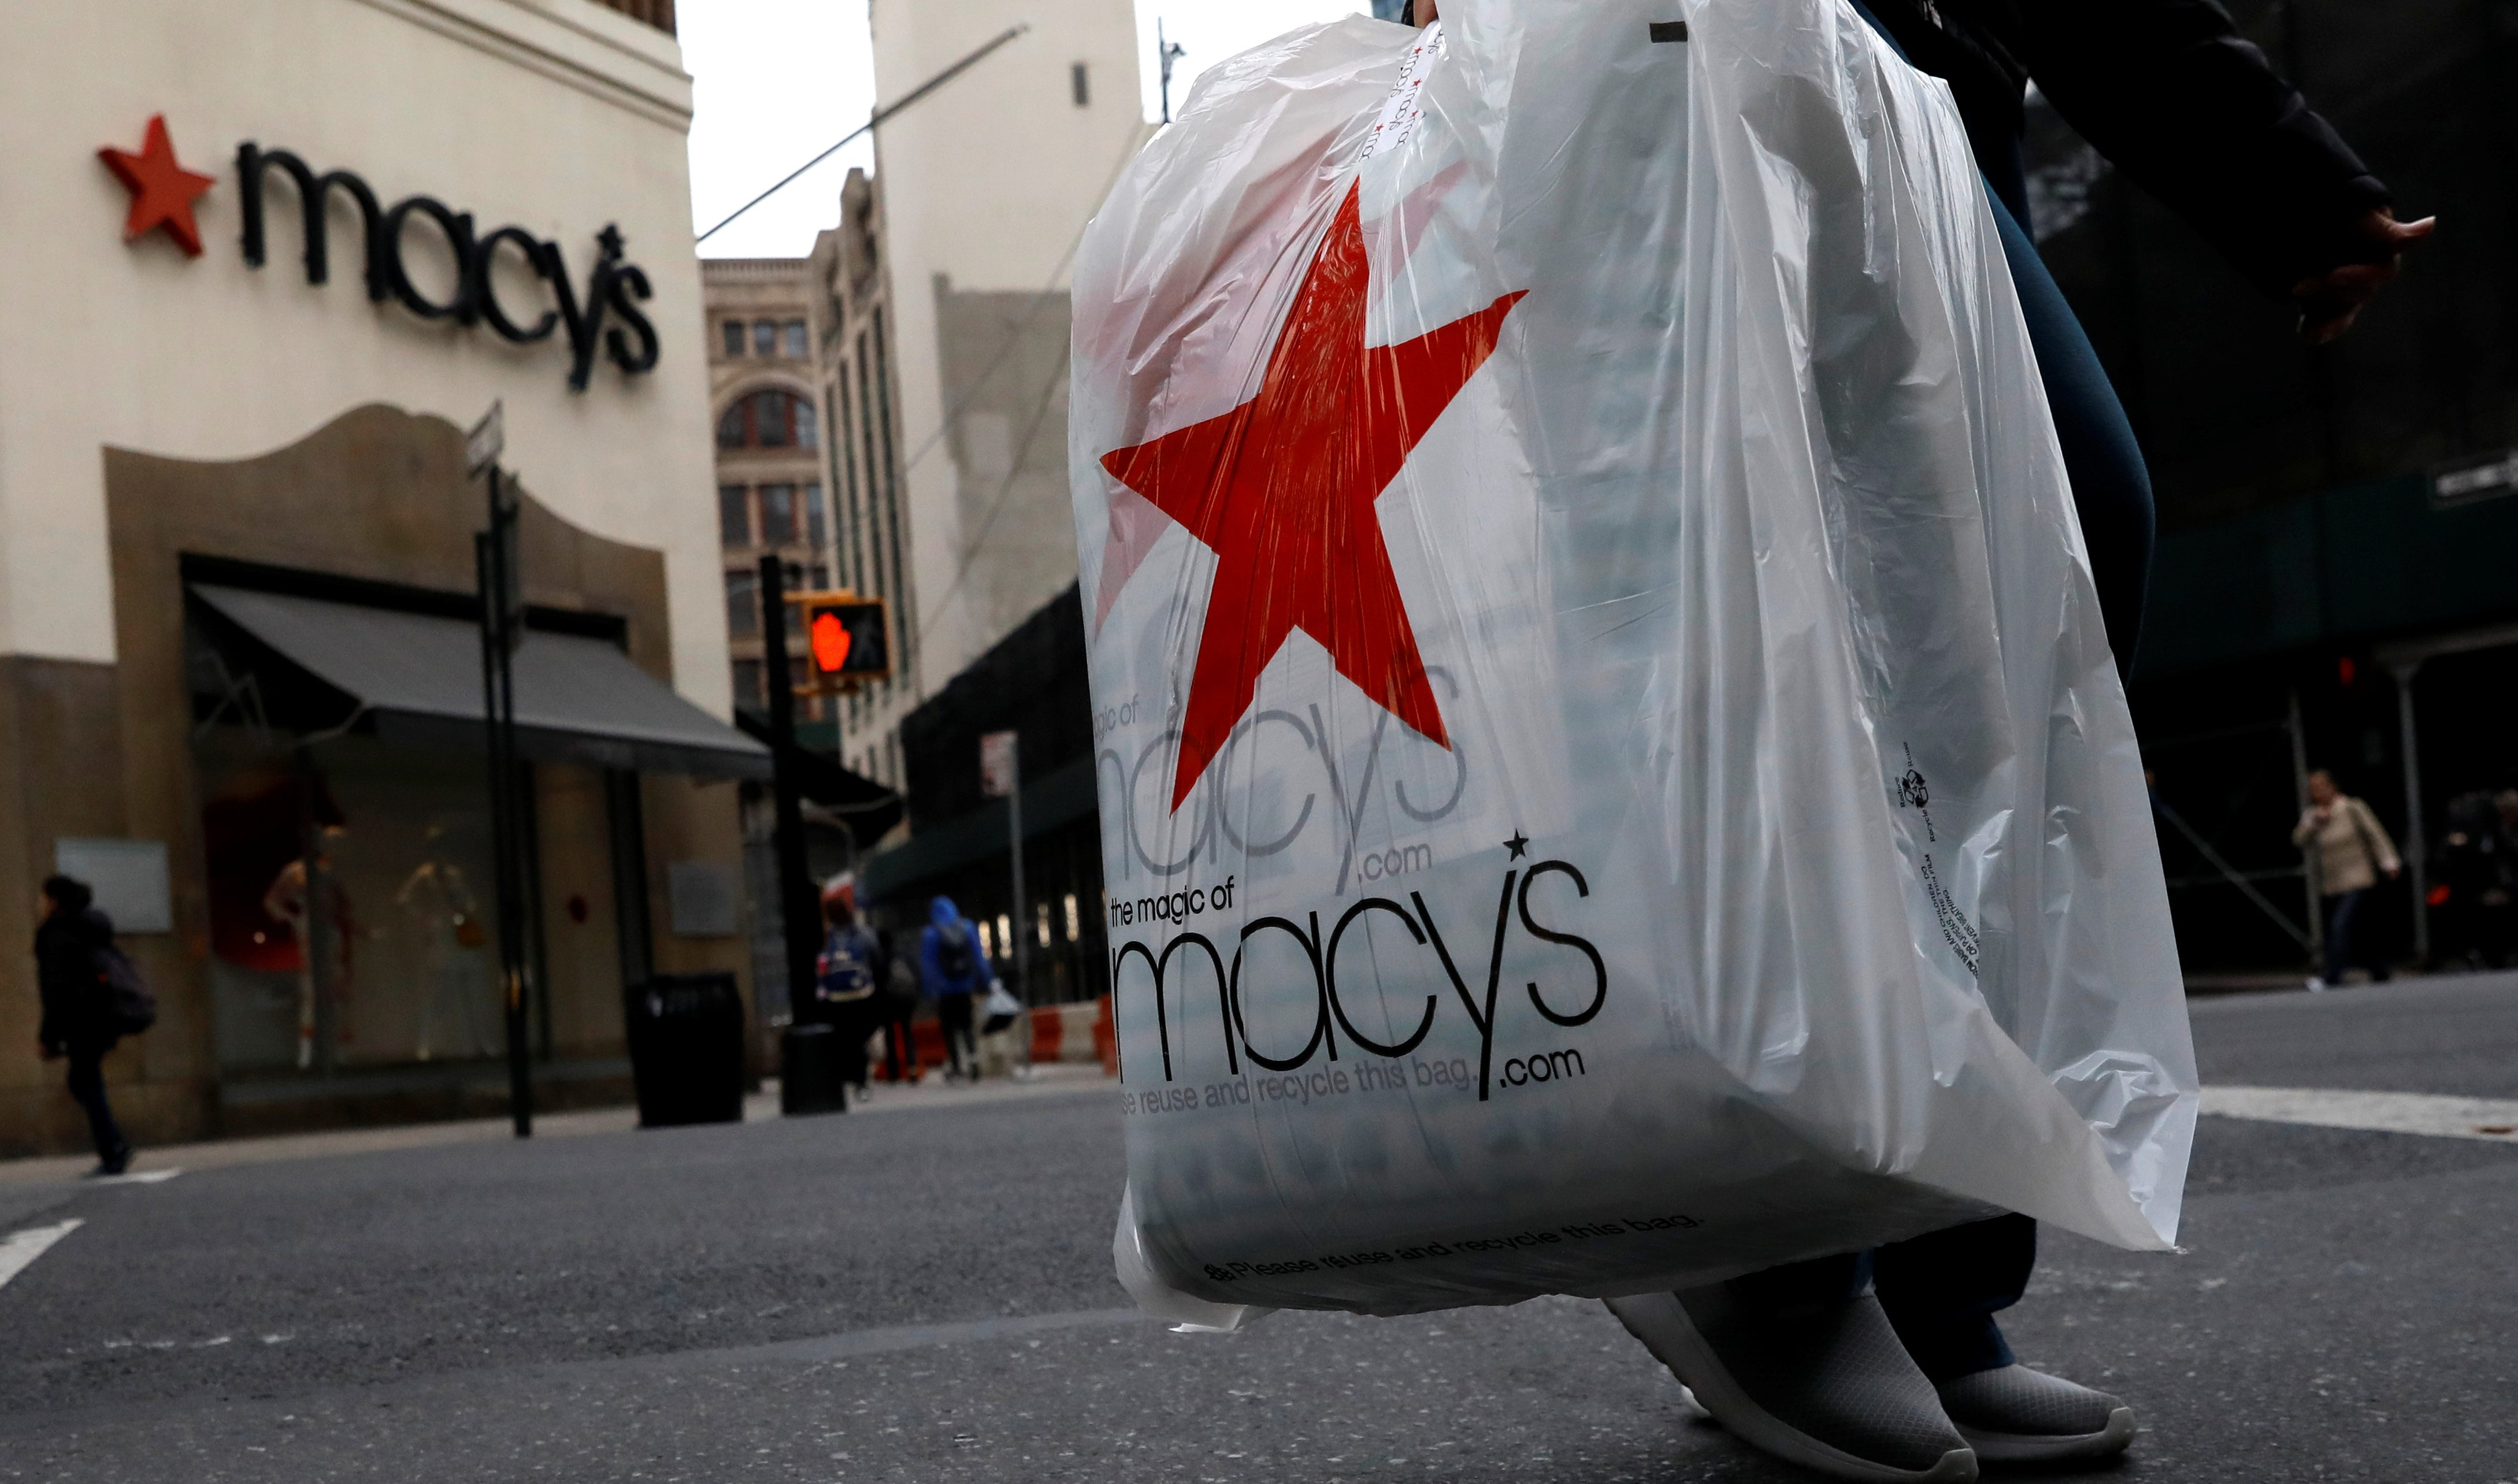 A customer carries a Macy's bag after exiting a Macy's store